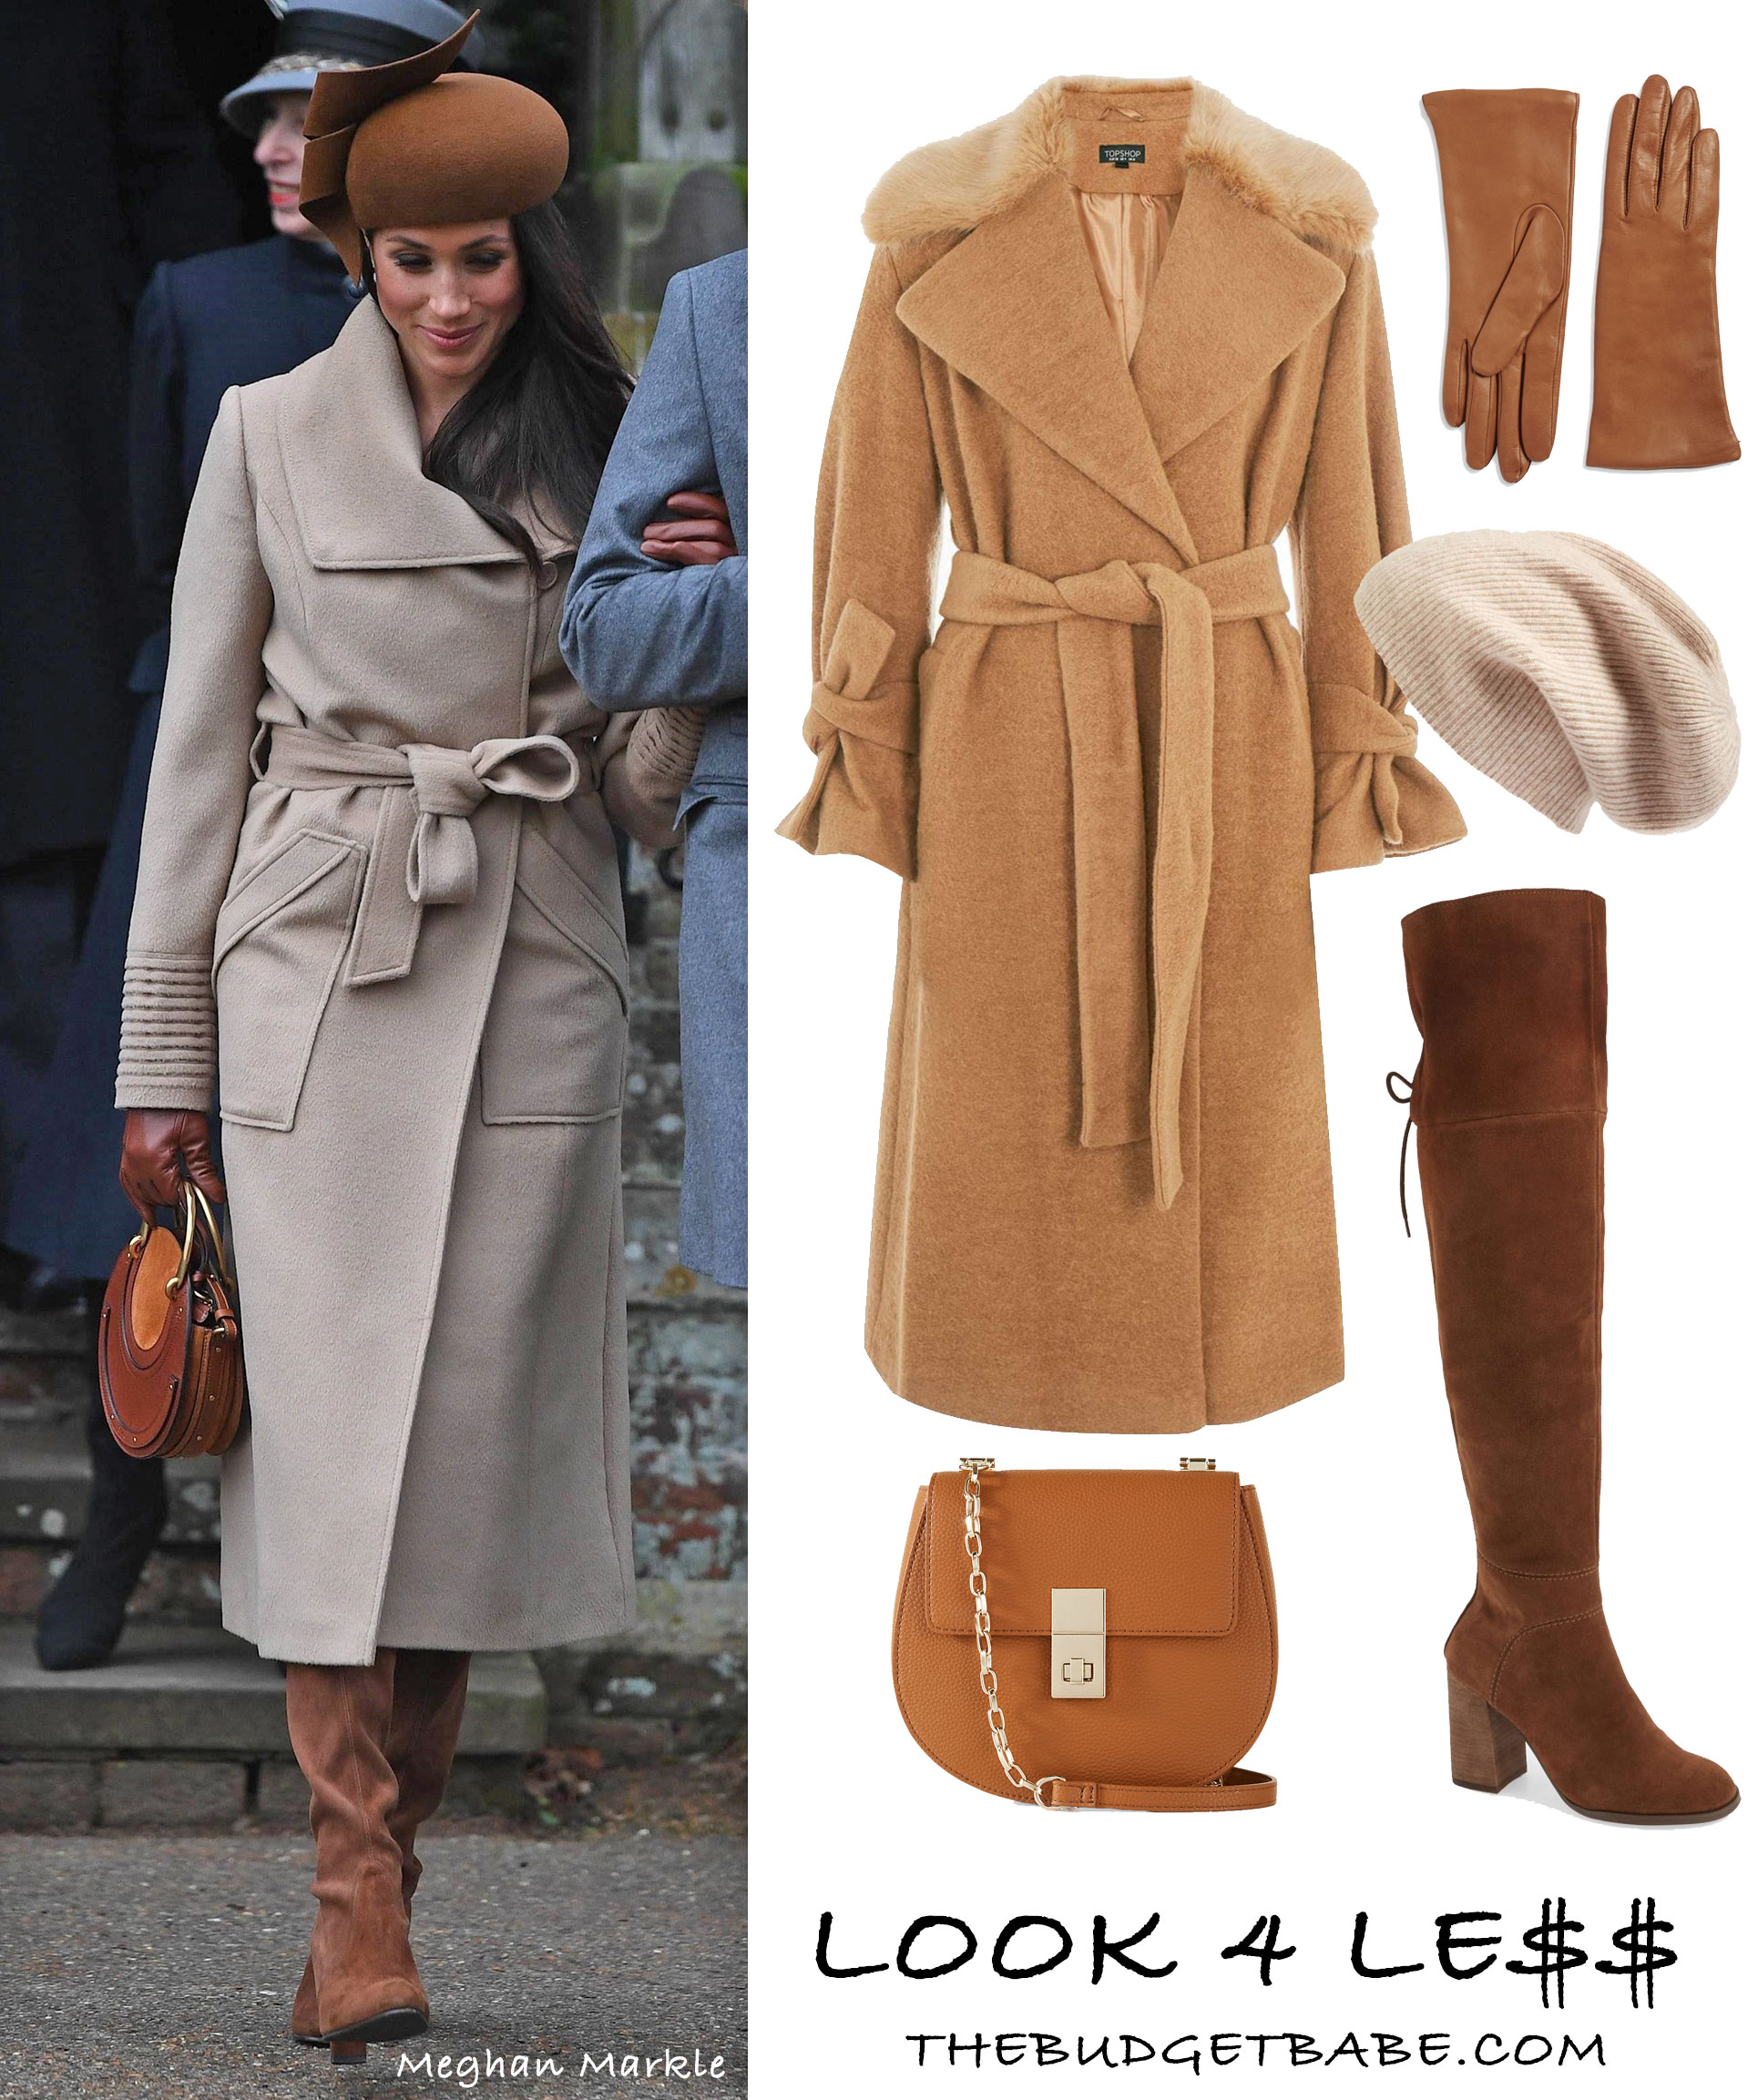 Meghan Markle wears a camel wrap coat by Sentaler with Stuart Weitzman boots and Chloe bag. Get the look for less!